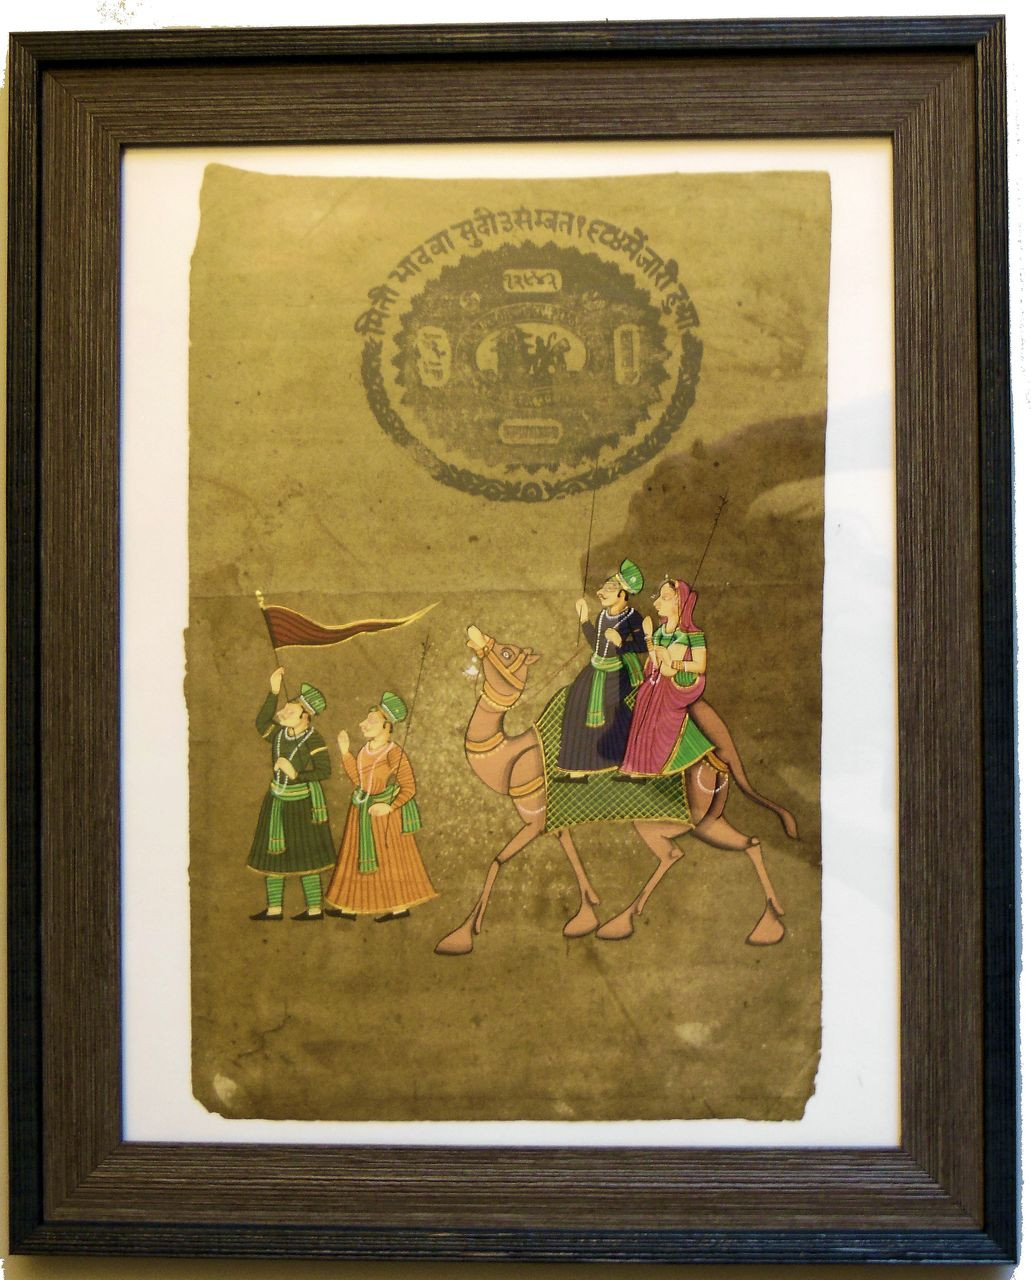 Royal Procession. New Paint on Antique Paper from Cochi, India.  Re-purposing materials.